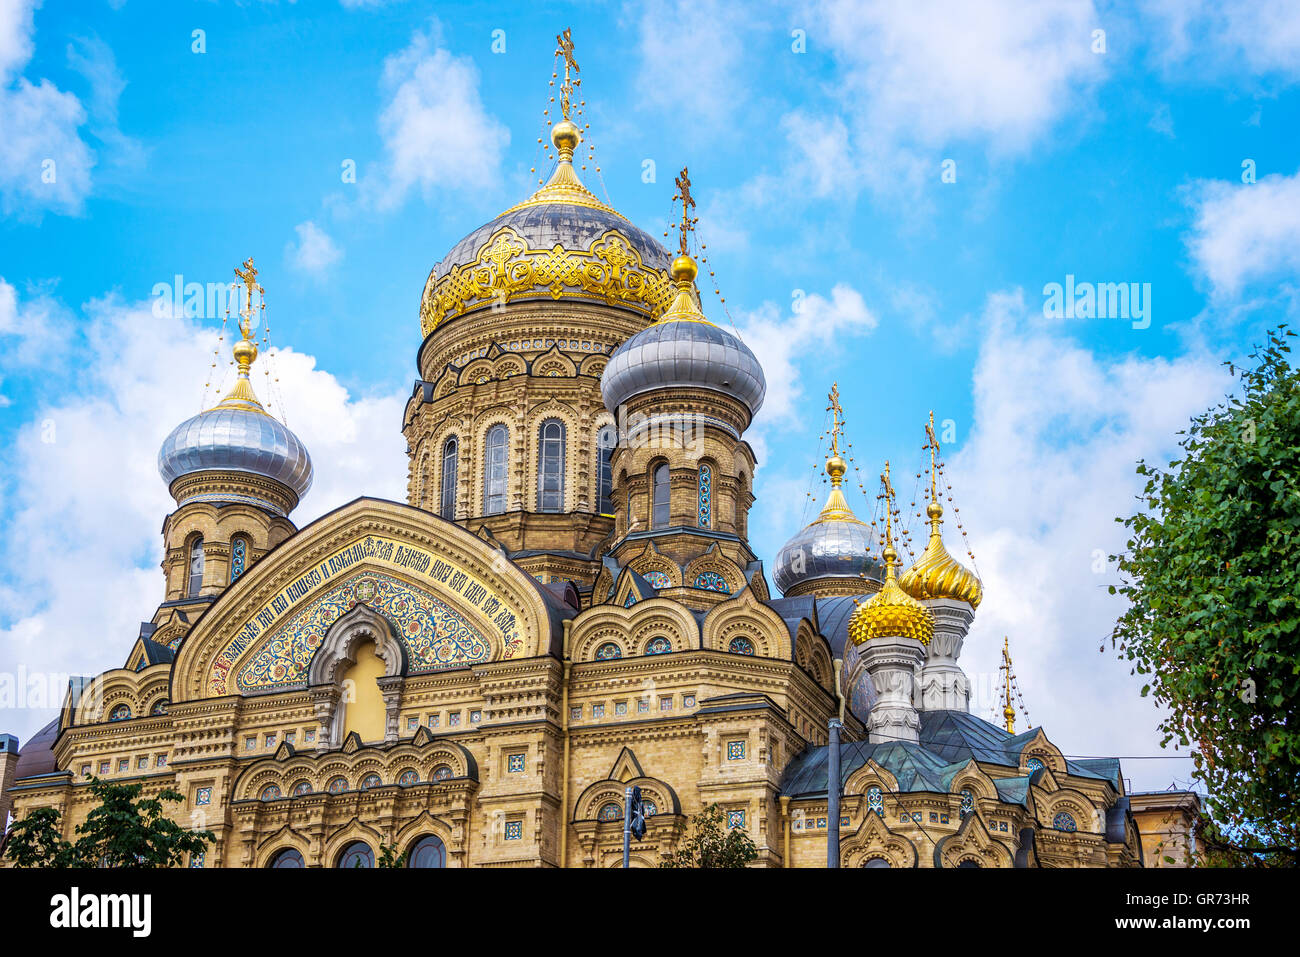 Church of the Assumption of the Blessed Virgin Mary, St Petersburg Russia - Stock Image